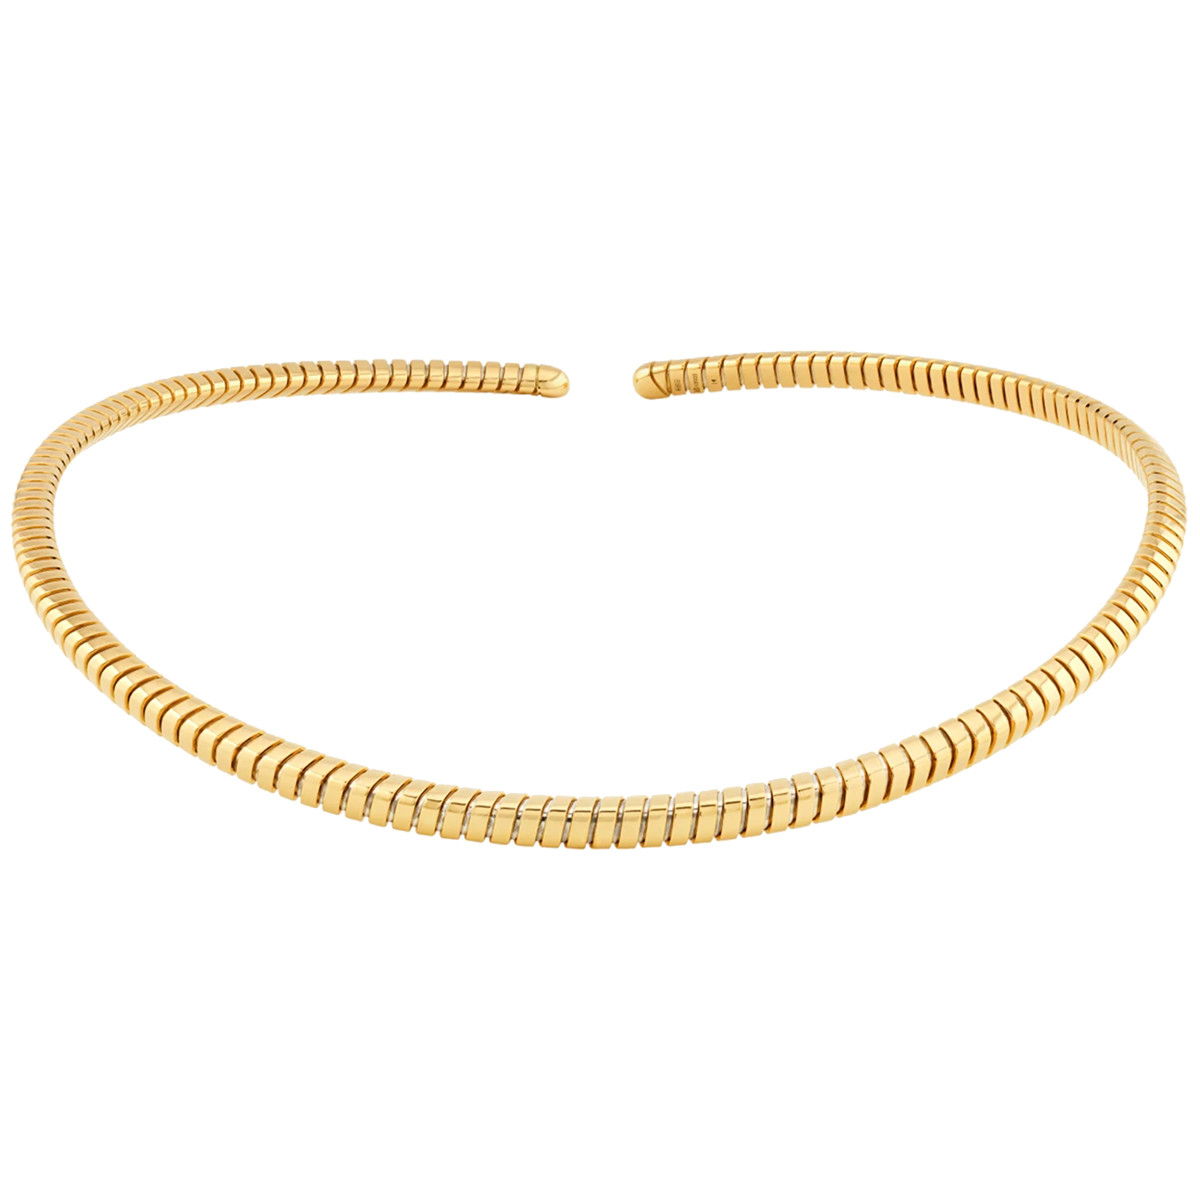 "18k Yellow Gold ""Trisolina"" Collar Necklace"